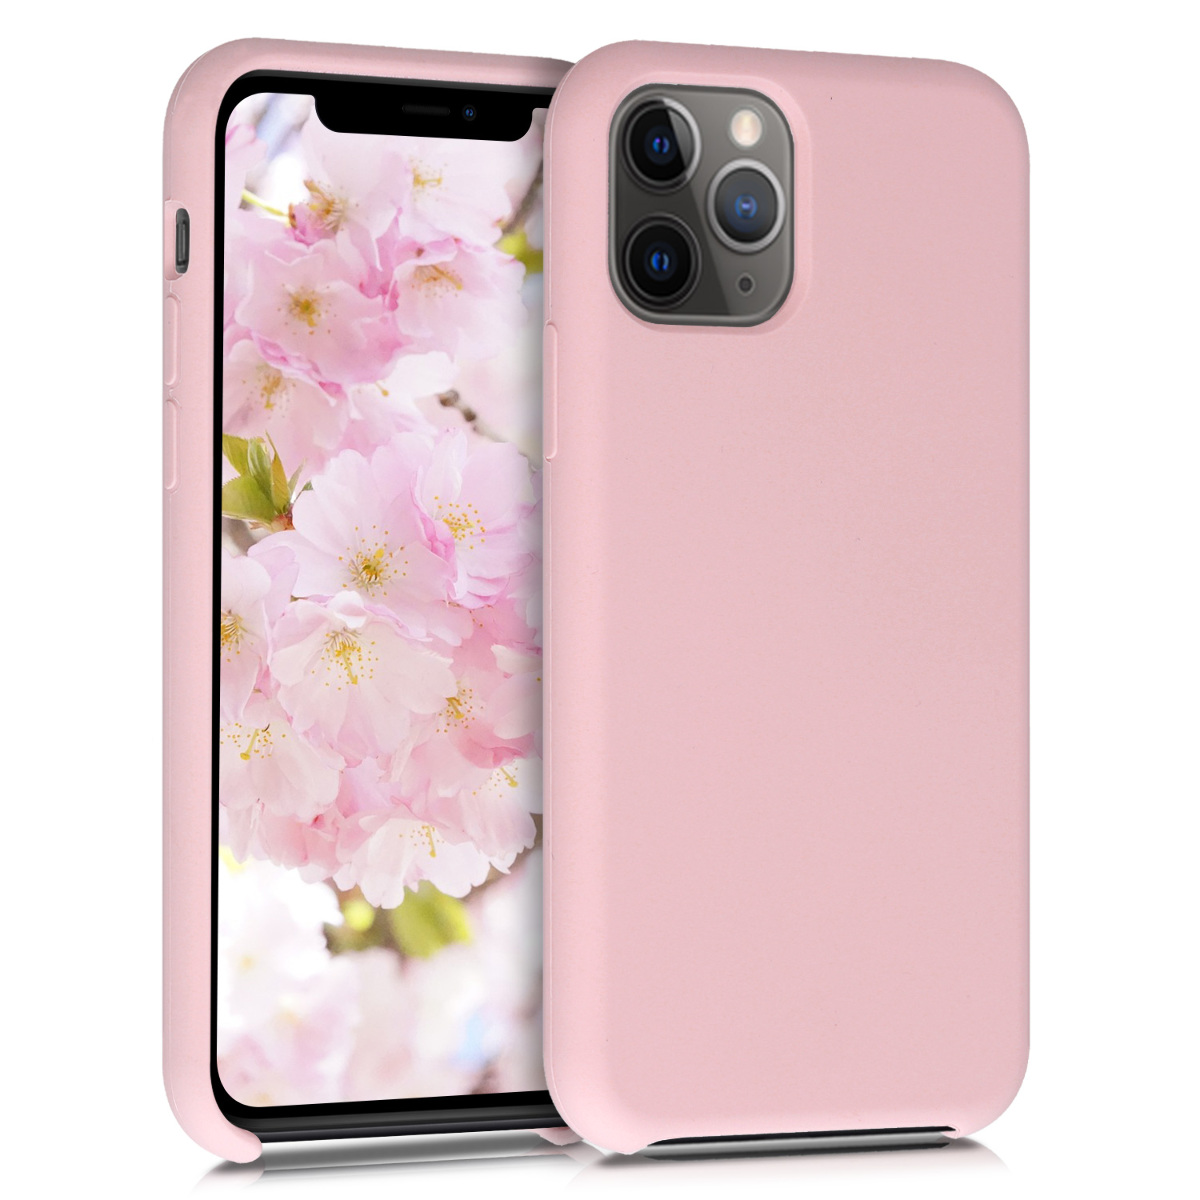 KW Θήκη Σιλικόνης Apple iPhone 11 Pro - Soft Flexible Rubber - Peach Skin (49726.156)